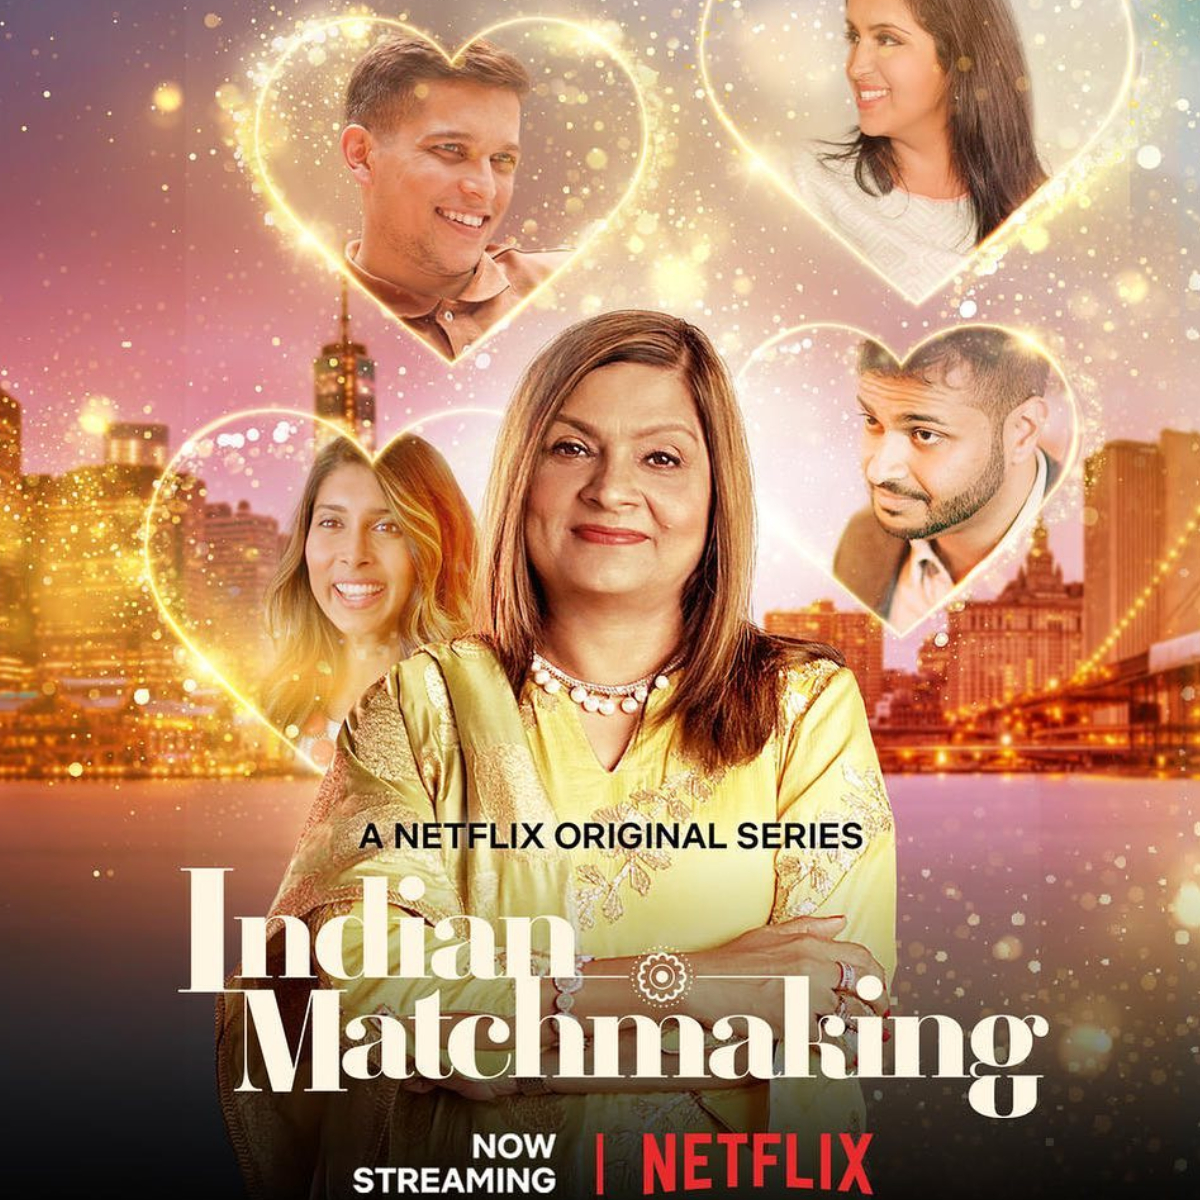 Will Netflix's Indian Matchmaking return for season 2? Creator ...